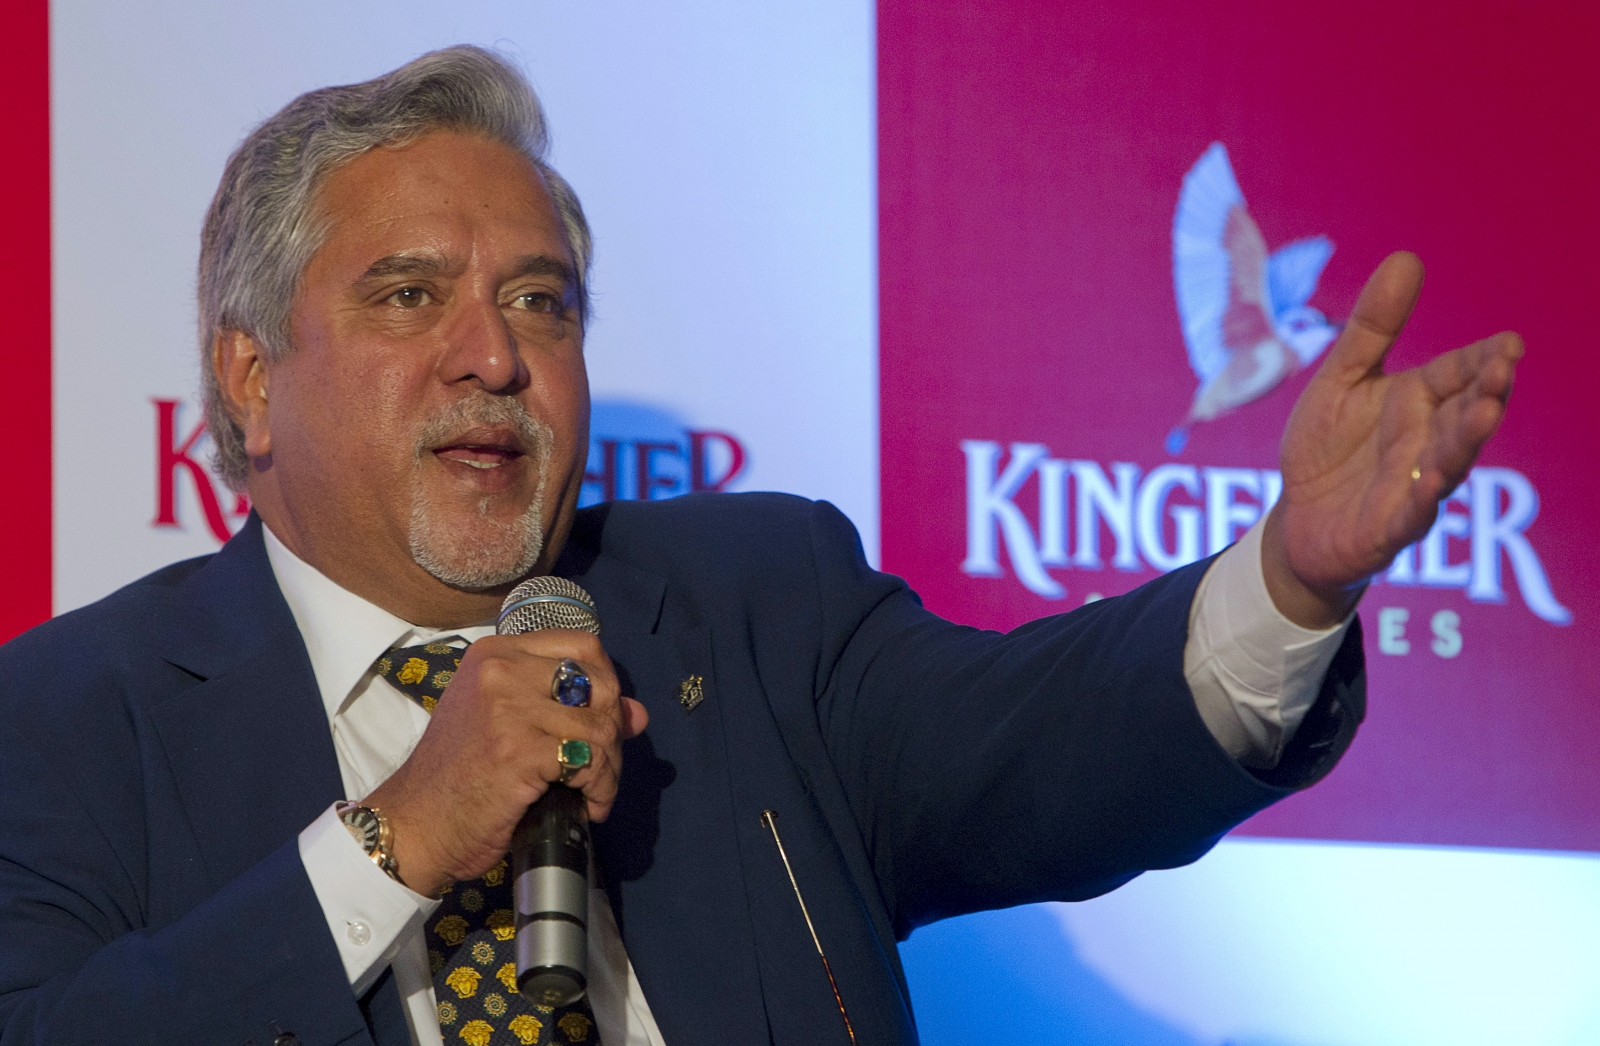 Vijay Mallya Kingfisher Airlines